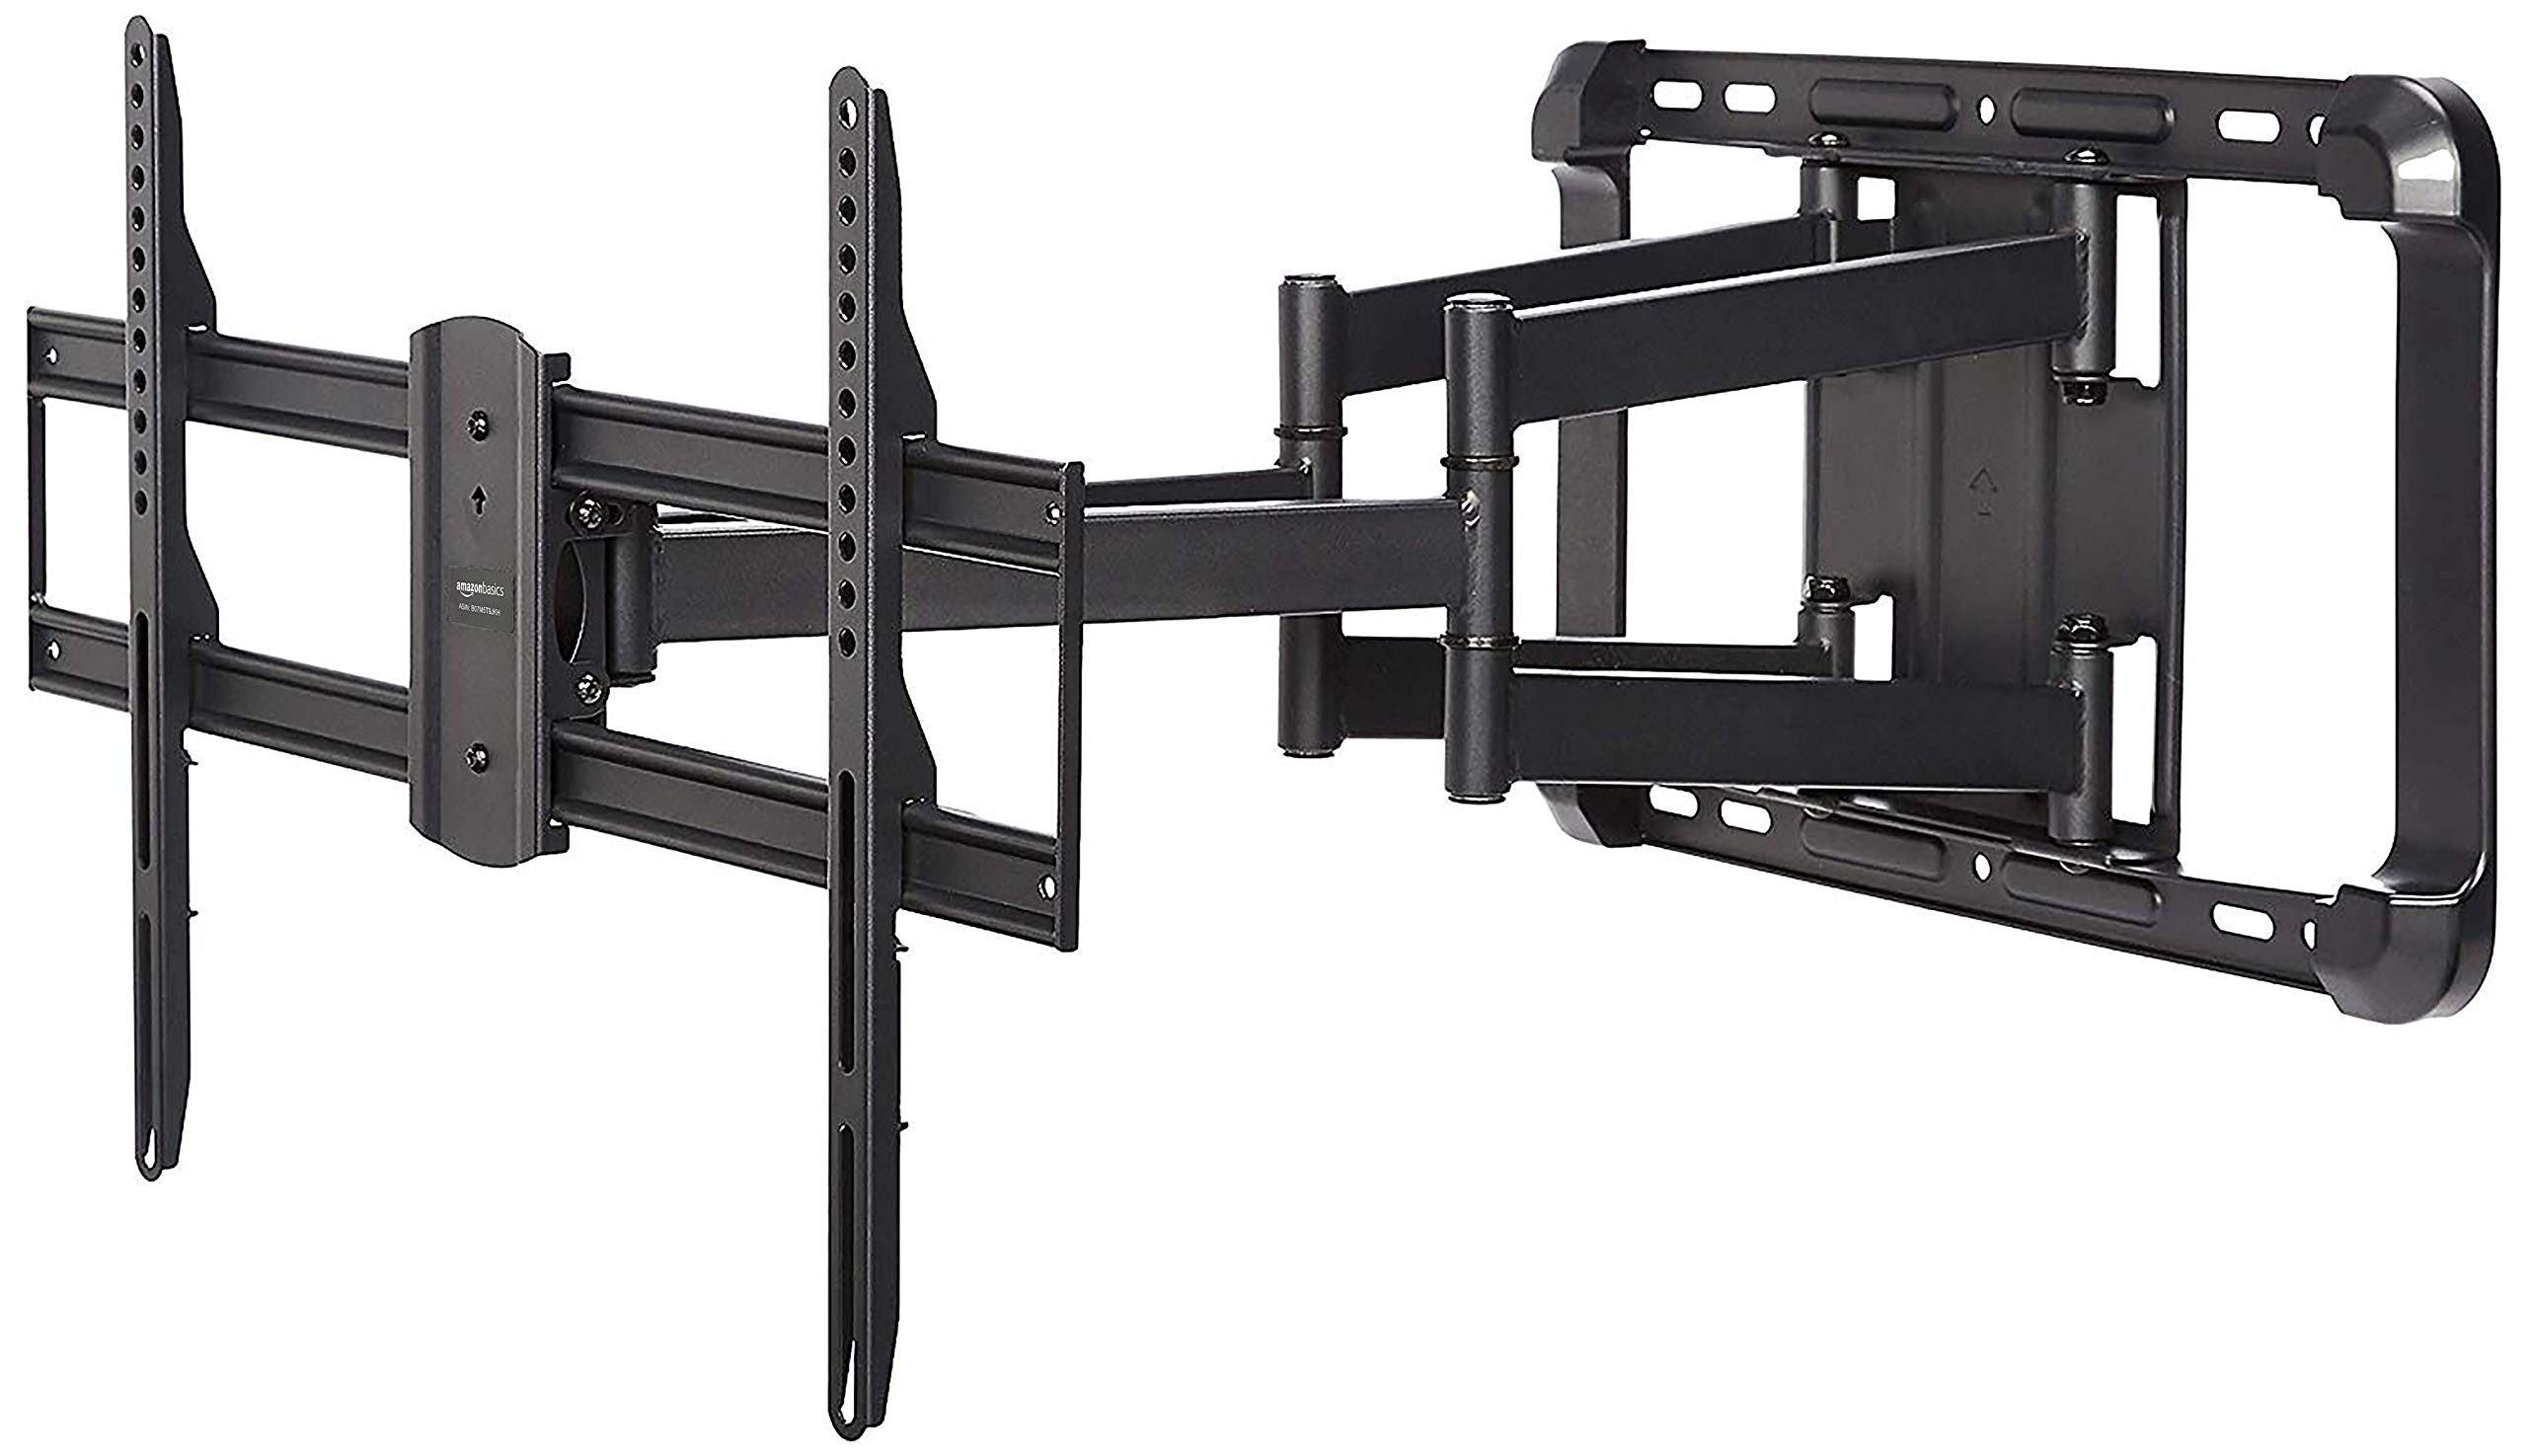 AmazonBasics Longer Extension Dual Arm Full Motion TV Mount, 37-Inch to 80-Inch by AmazonBasics